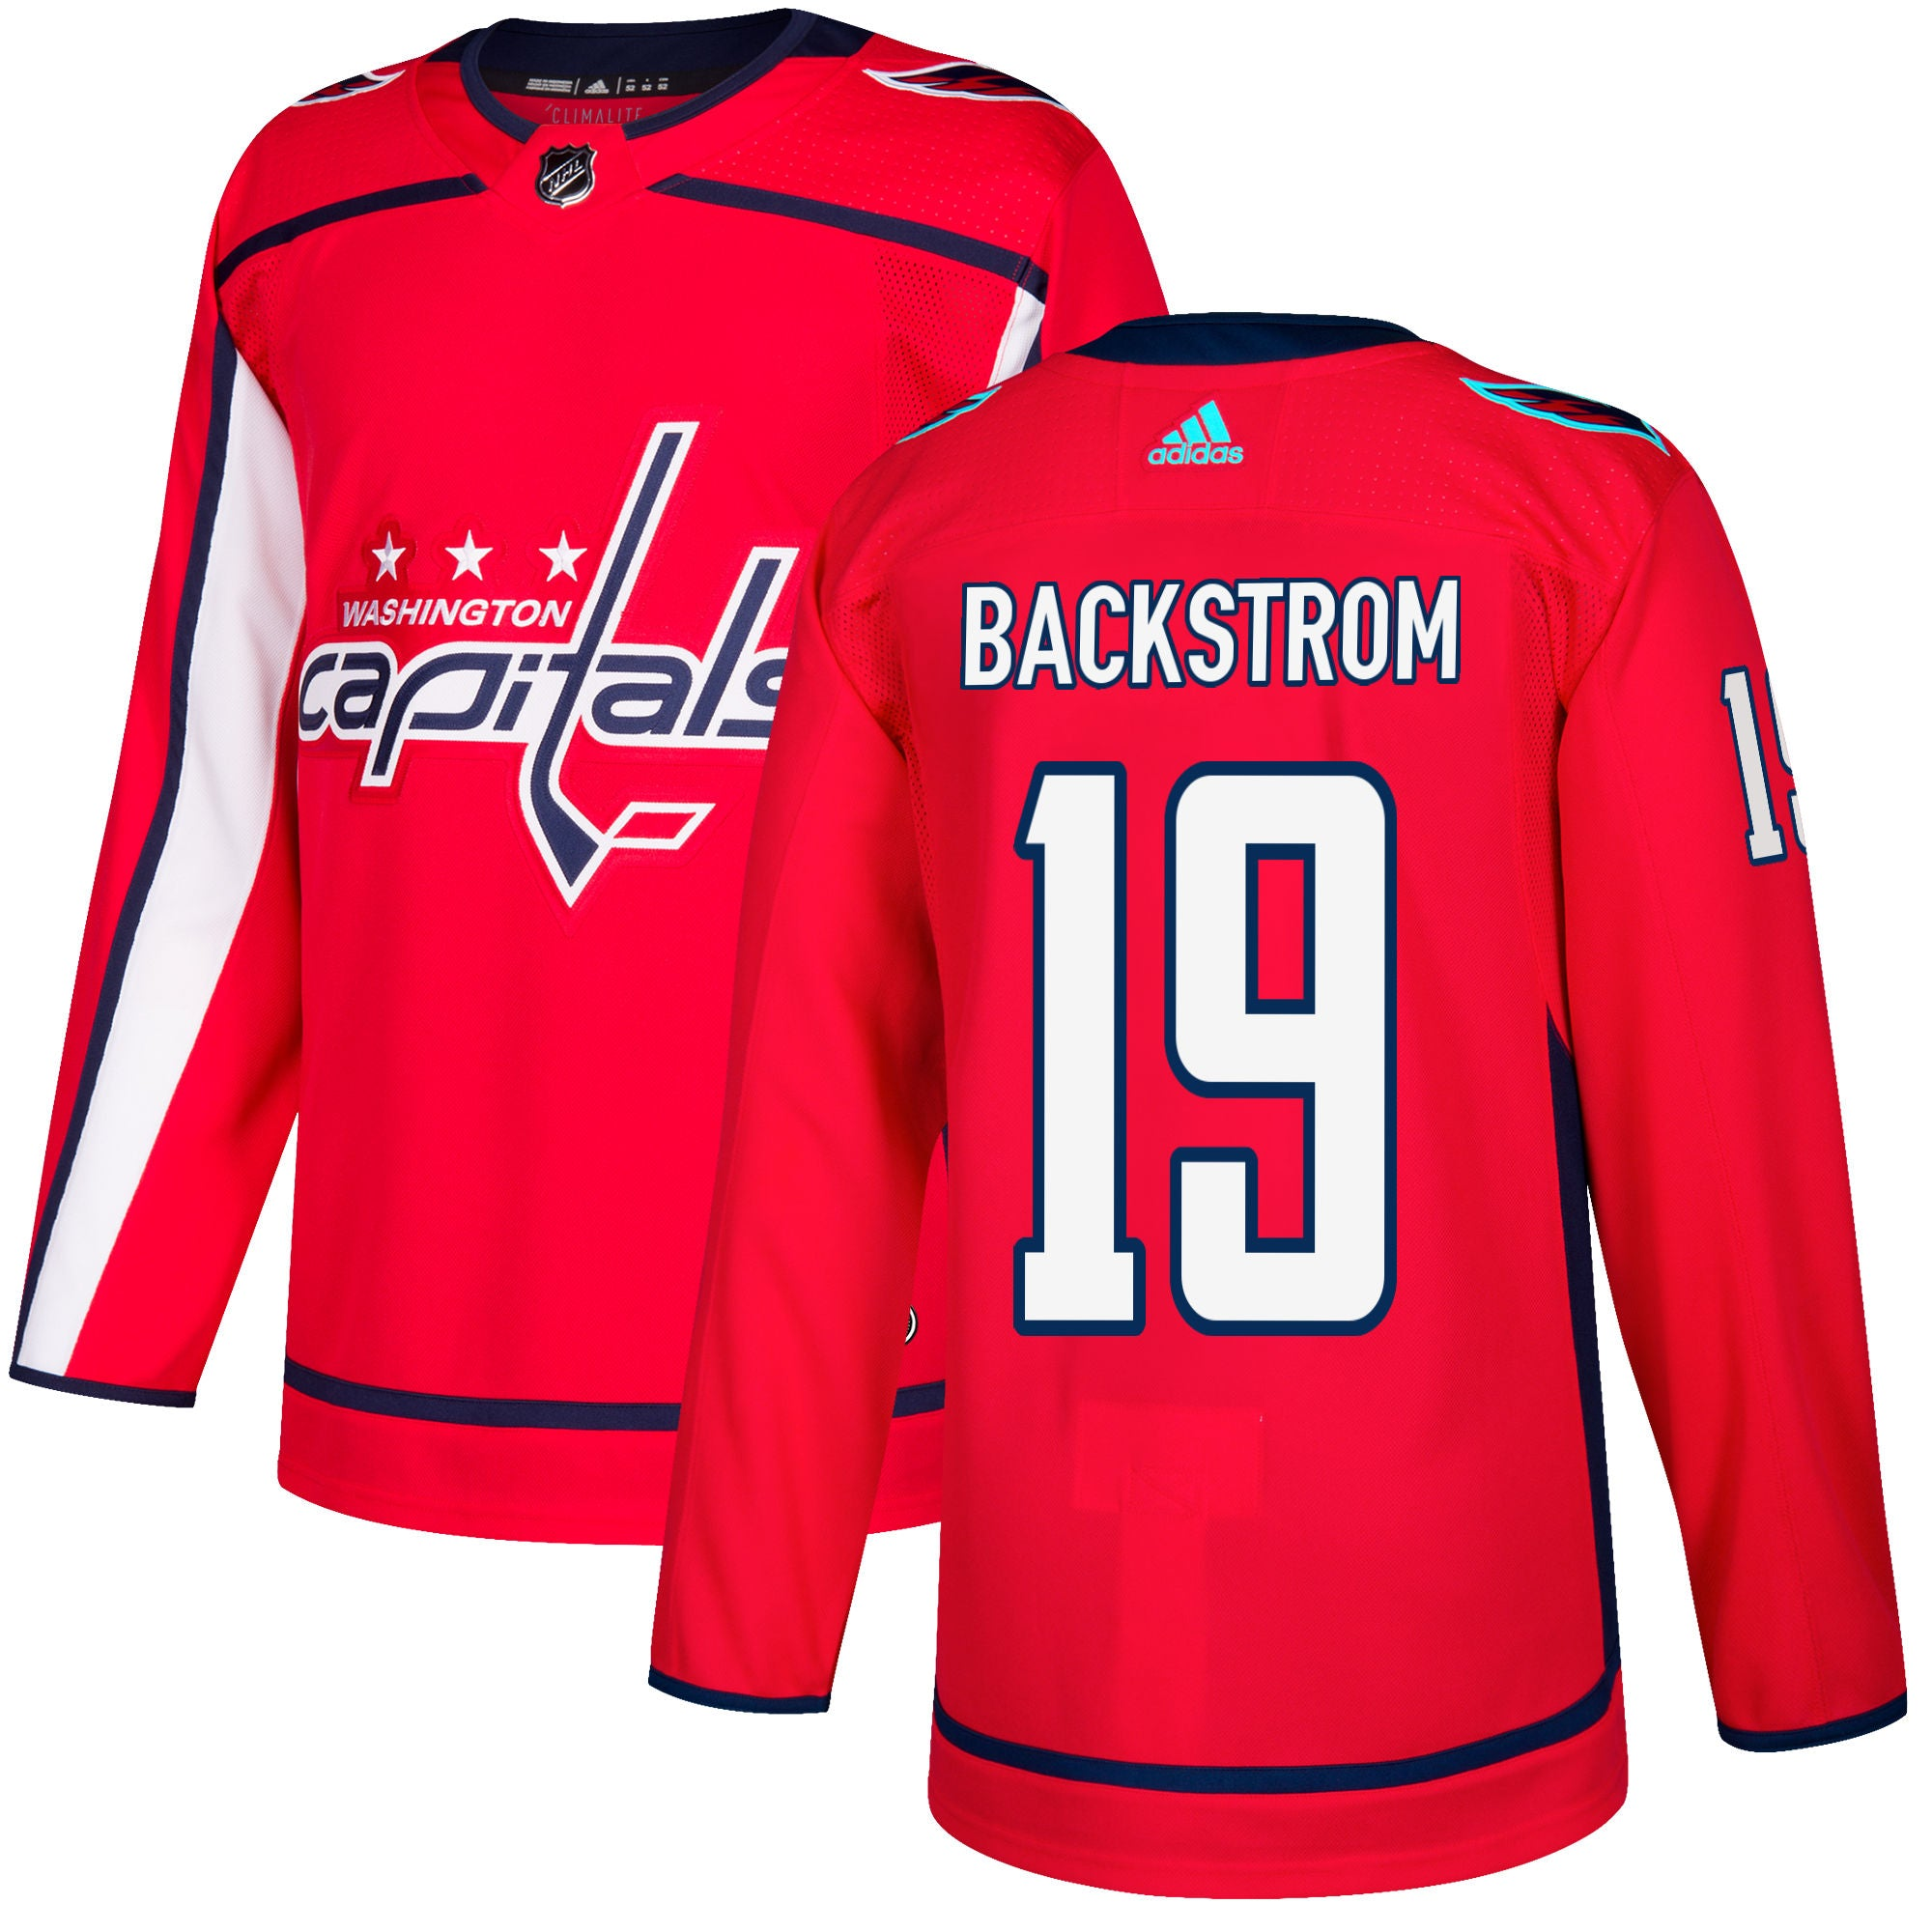 designer fashion 5cb19 0d7c4 Washington Capitals Nicklas Backstrom NHL Authentic Pro Home Jersey